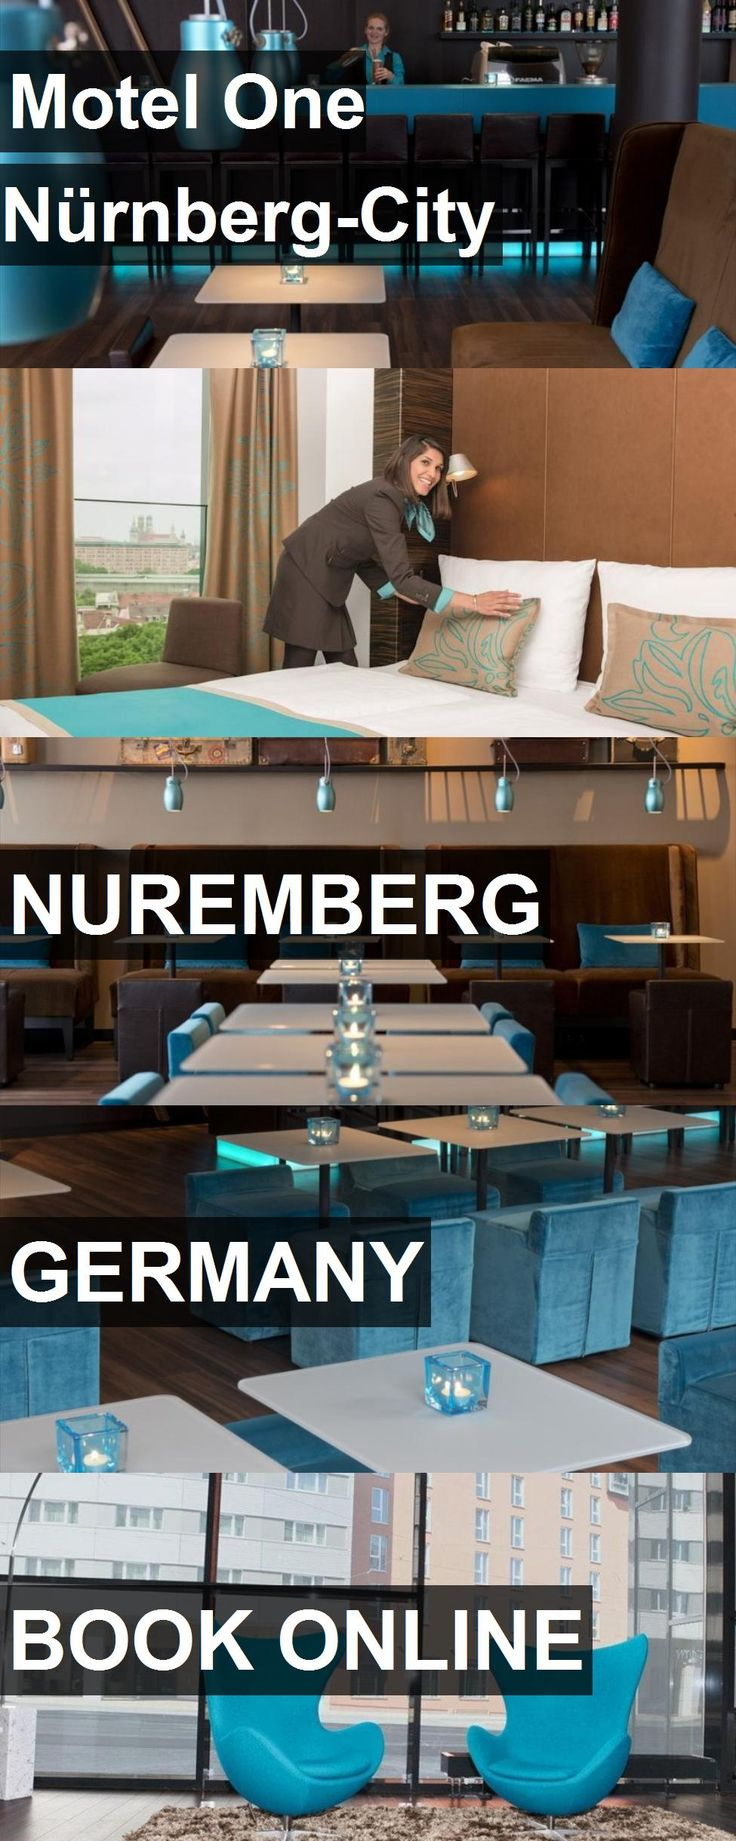 Hotel Motel One Nürnberg-City in Nuremberg, Germany. For more information, photos, reviews and best prices please follow the link. #Germany #Nuremberg #MotelOneNürnberg-City #hotel #travel #vacation